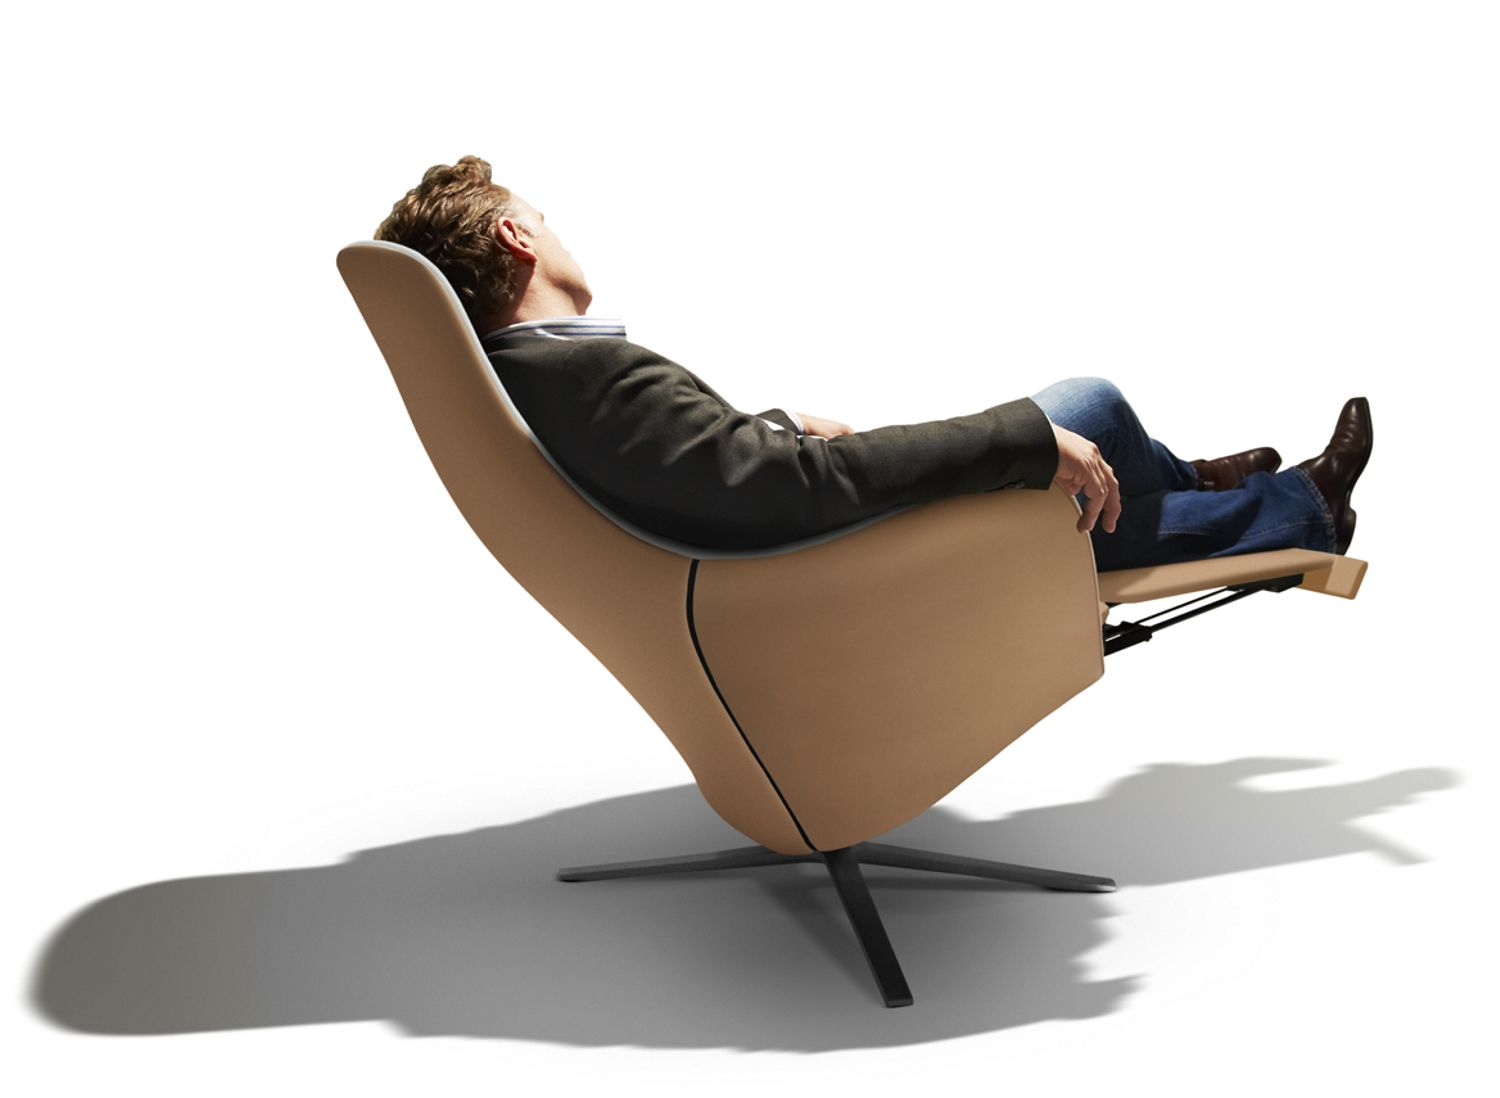 Fauteuil Met Voetsteun.Marvin By Christophe Marchand Montis Contemporary Armchair